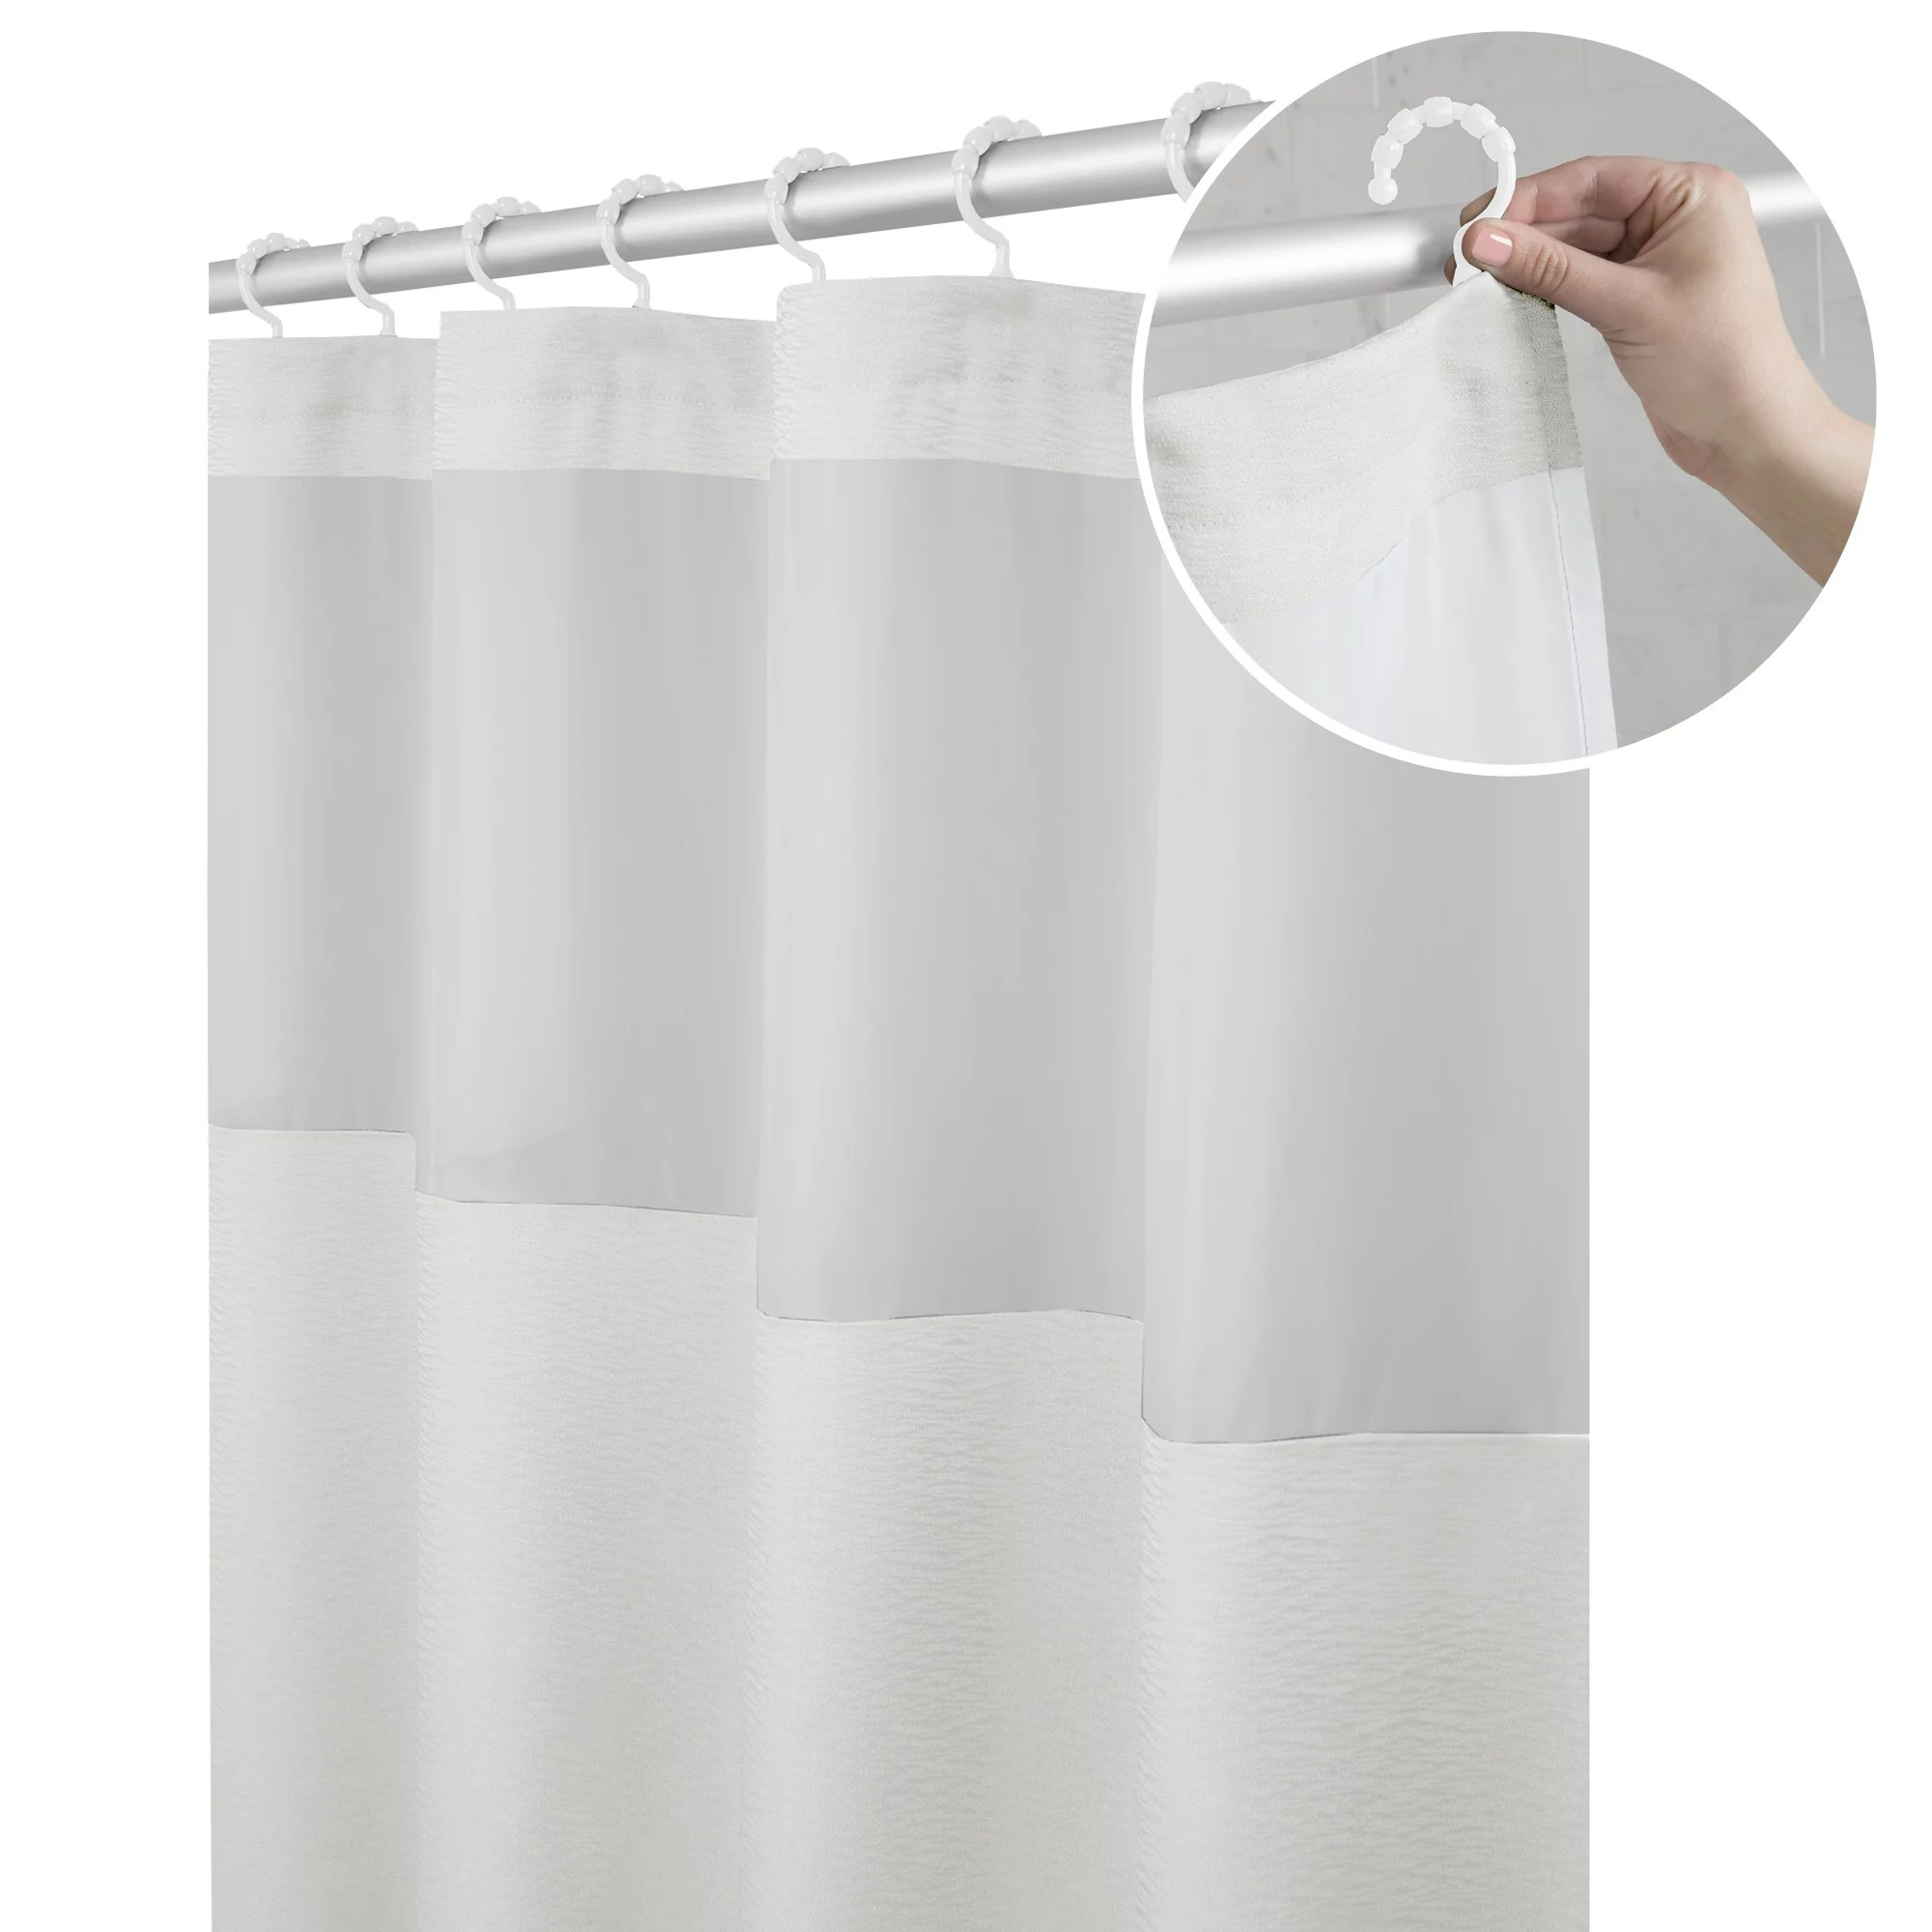 https www walmart com ip maytex smart curtain hendrix view fabric shower curtain with attached roller glide hooks 296993502